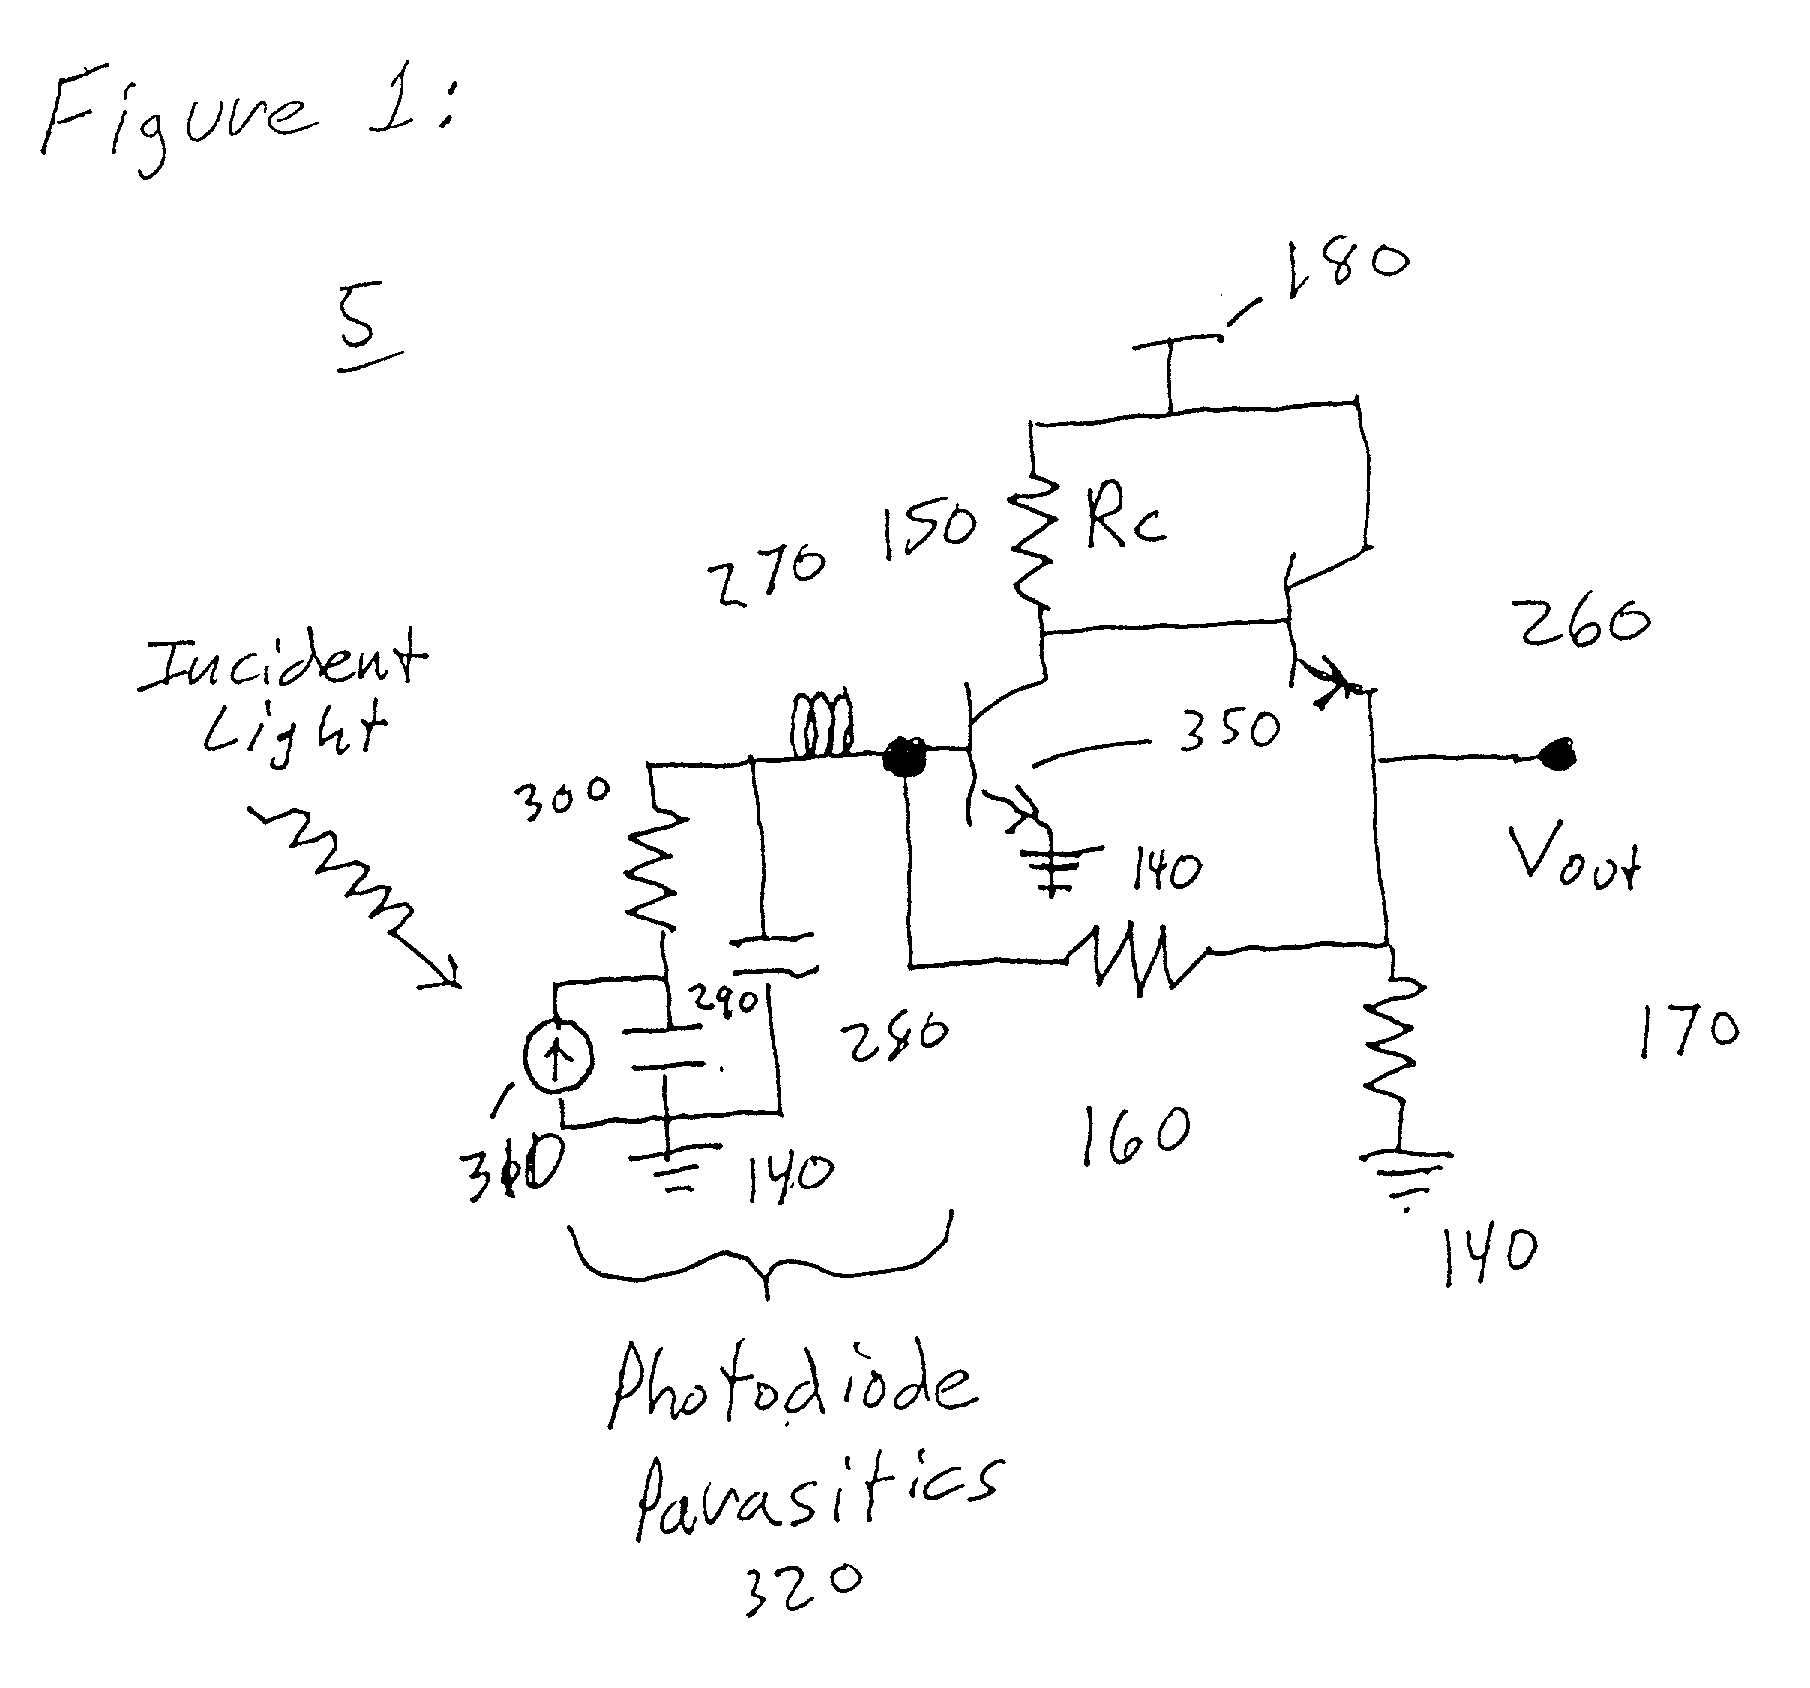 Transimpedance Patent Giftsforsubs Us6359517 Photodiode Circuit Google Patents